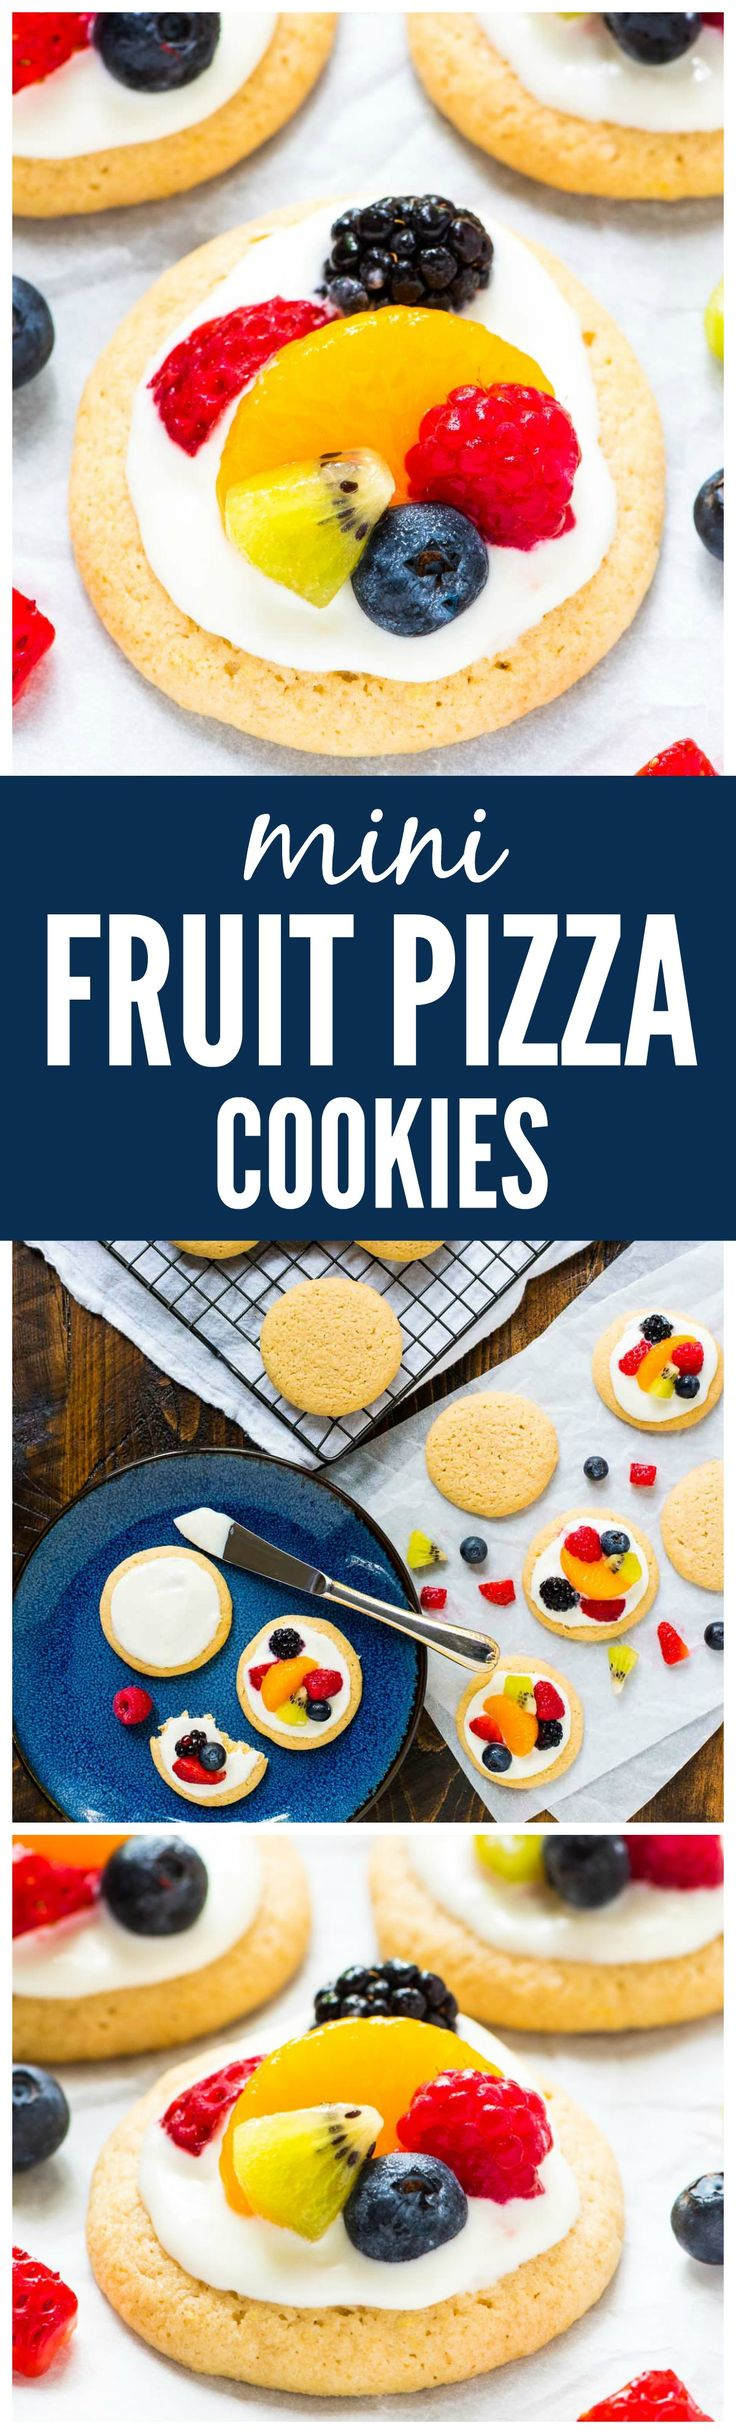 Mini Fruit Pizza Cookies. Such a cute twist on a classic summer dessert! Soft, buttery sugar cookies topped with sweet cream cheese frosting and fresh fruit. Simple and delicious! Recipe at wellplated.com @wellplated